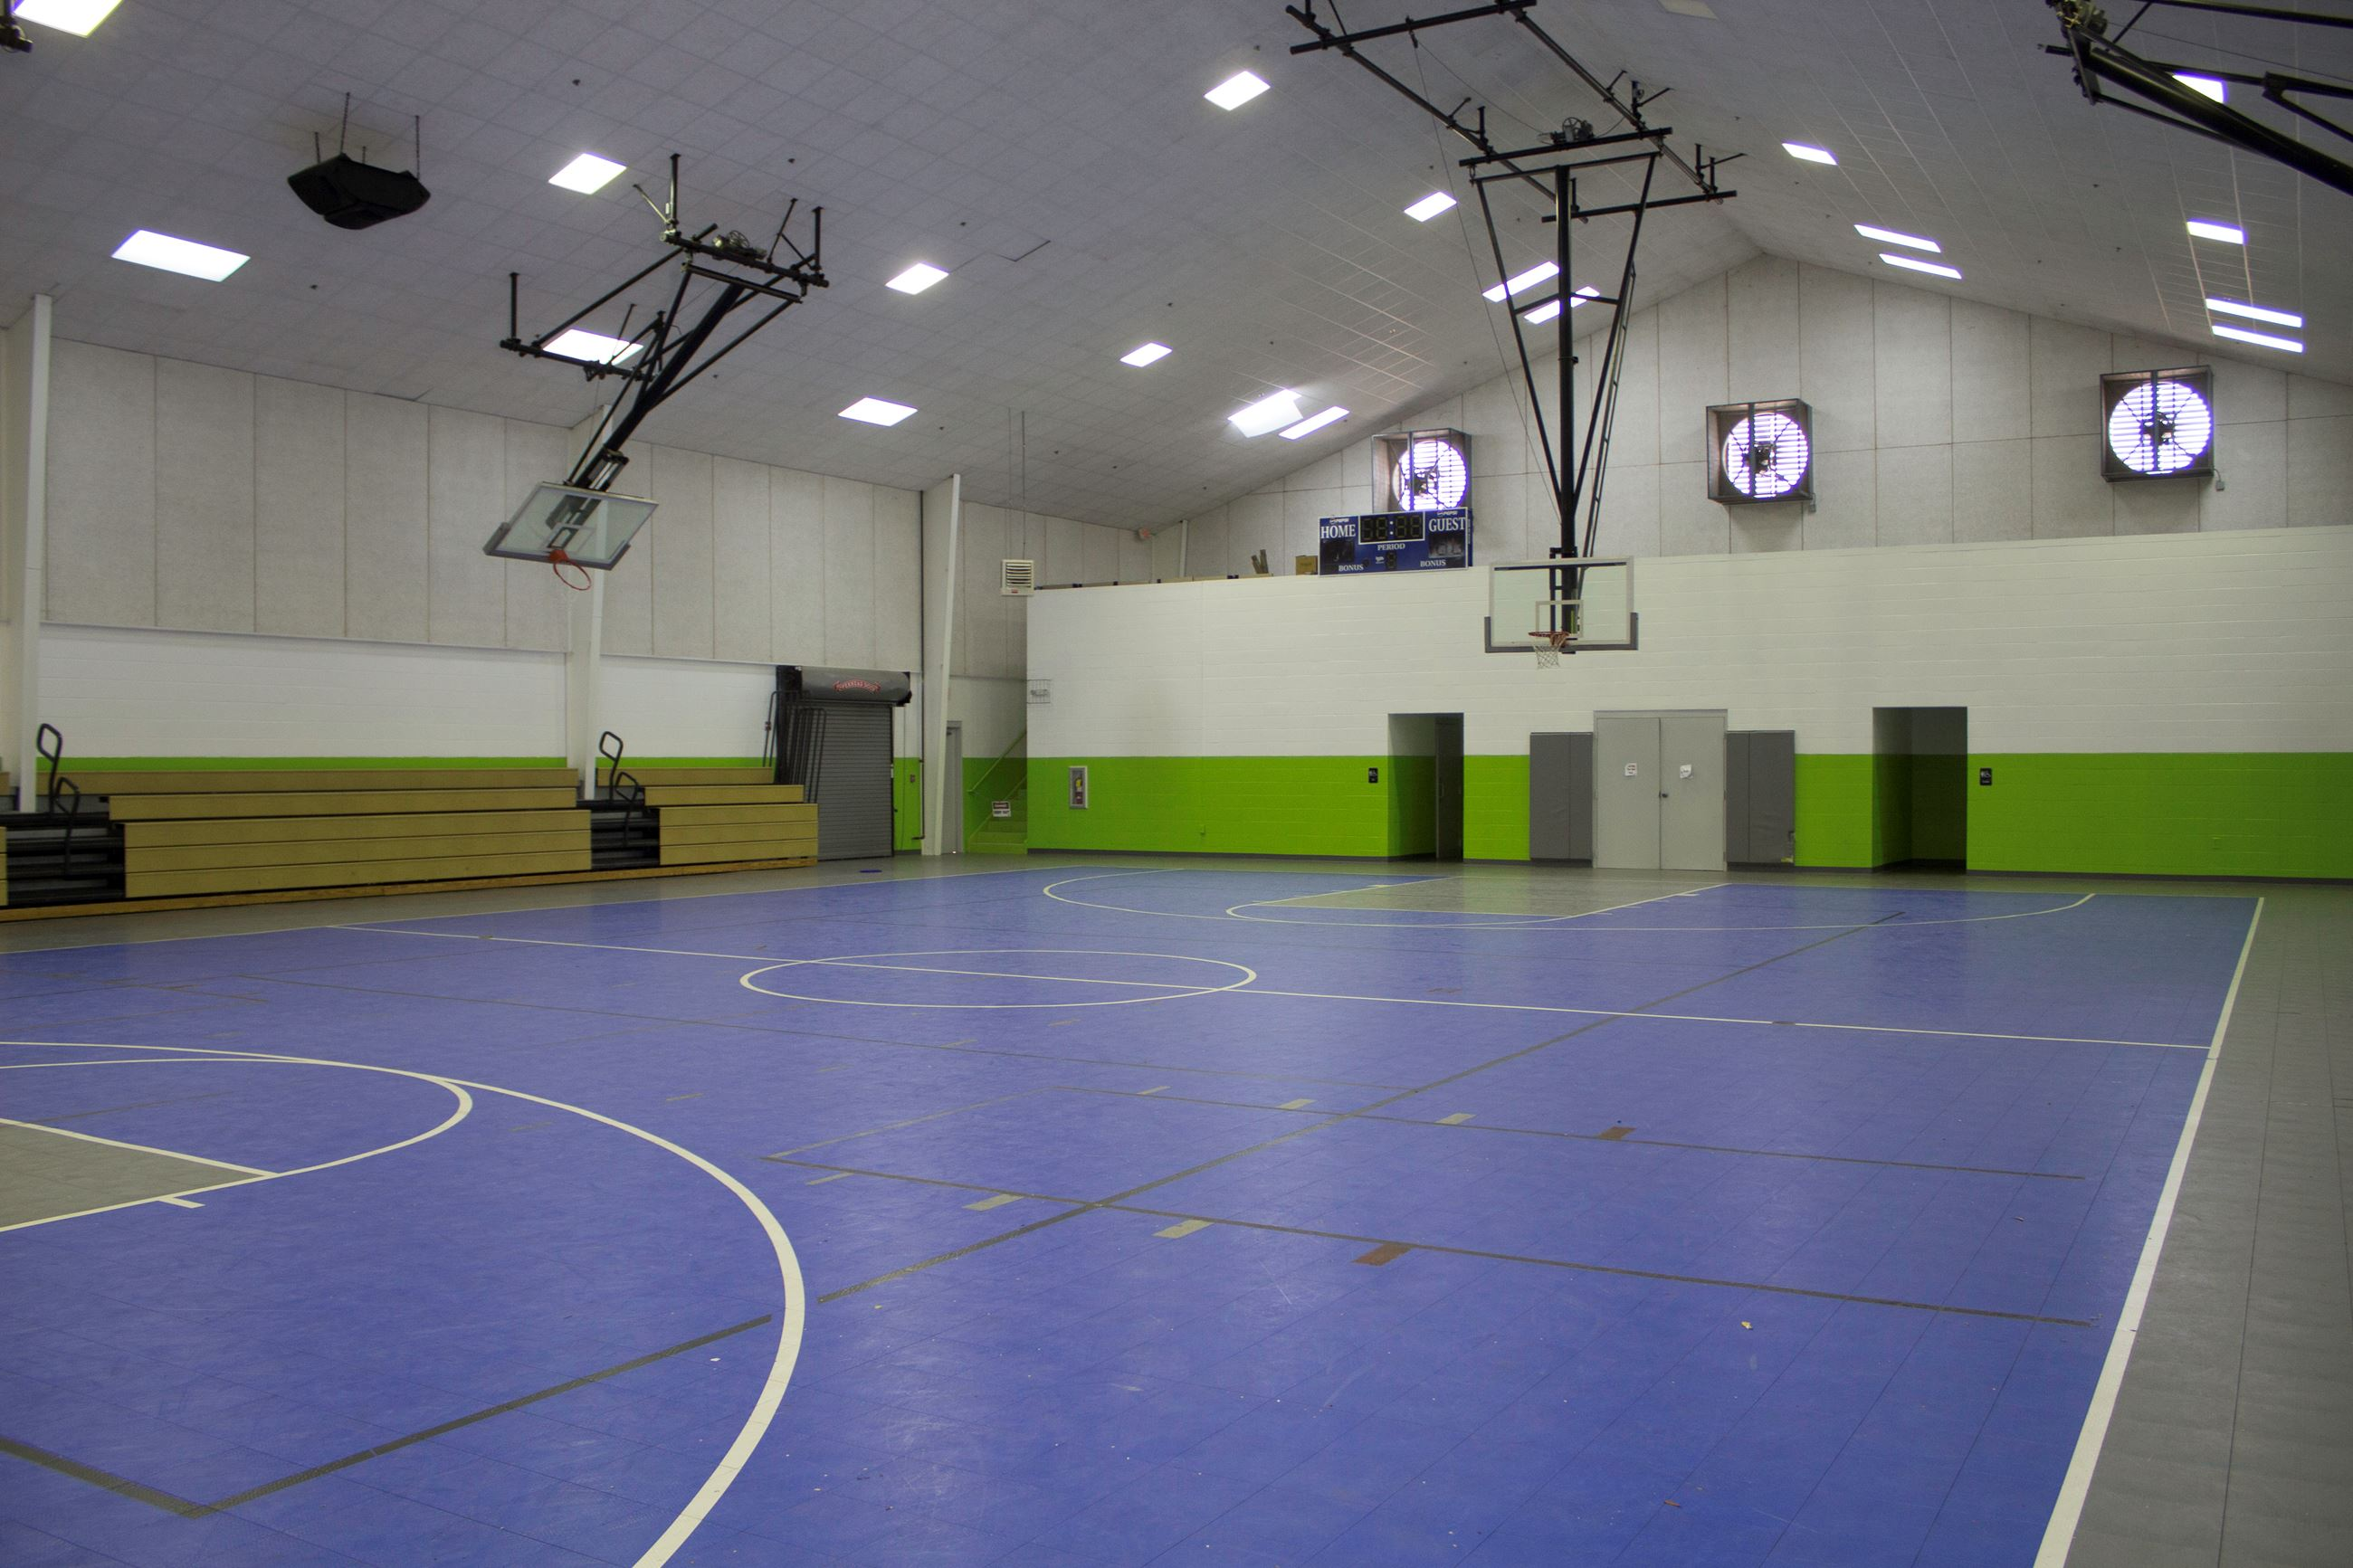 An image of a gymnasium with blue basketball court.